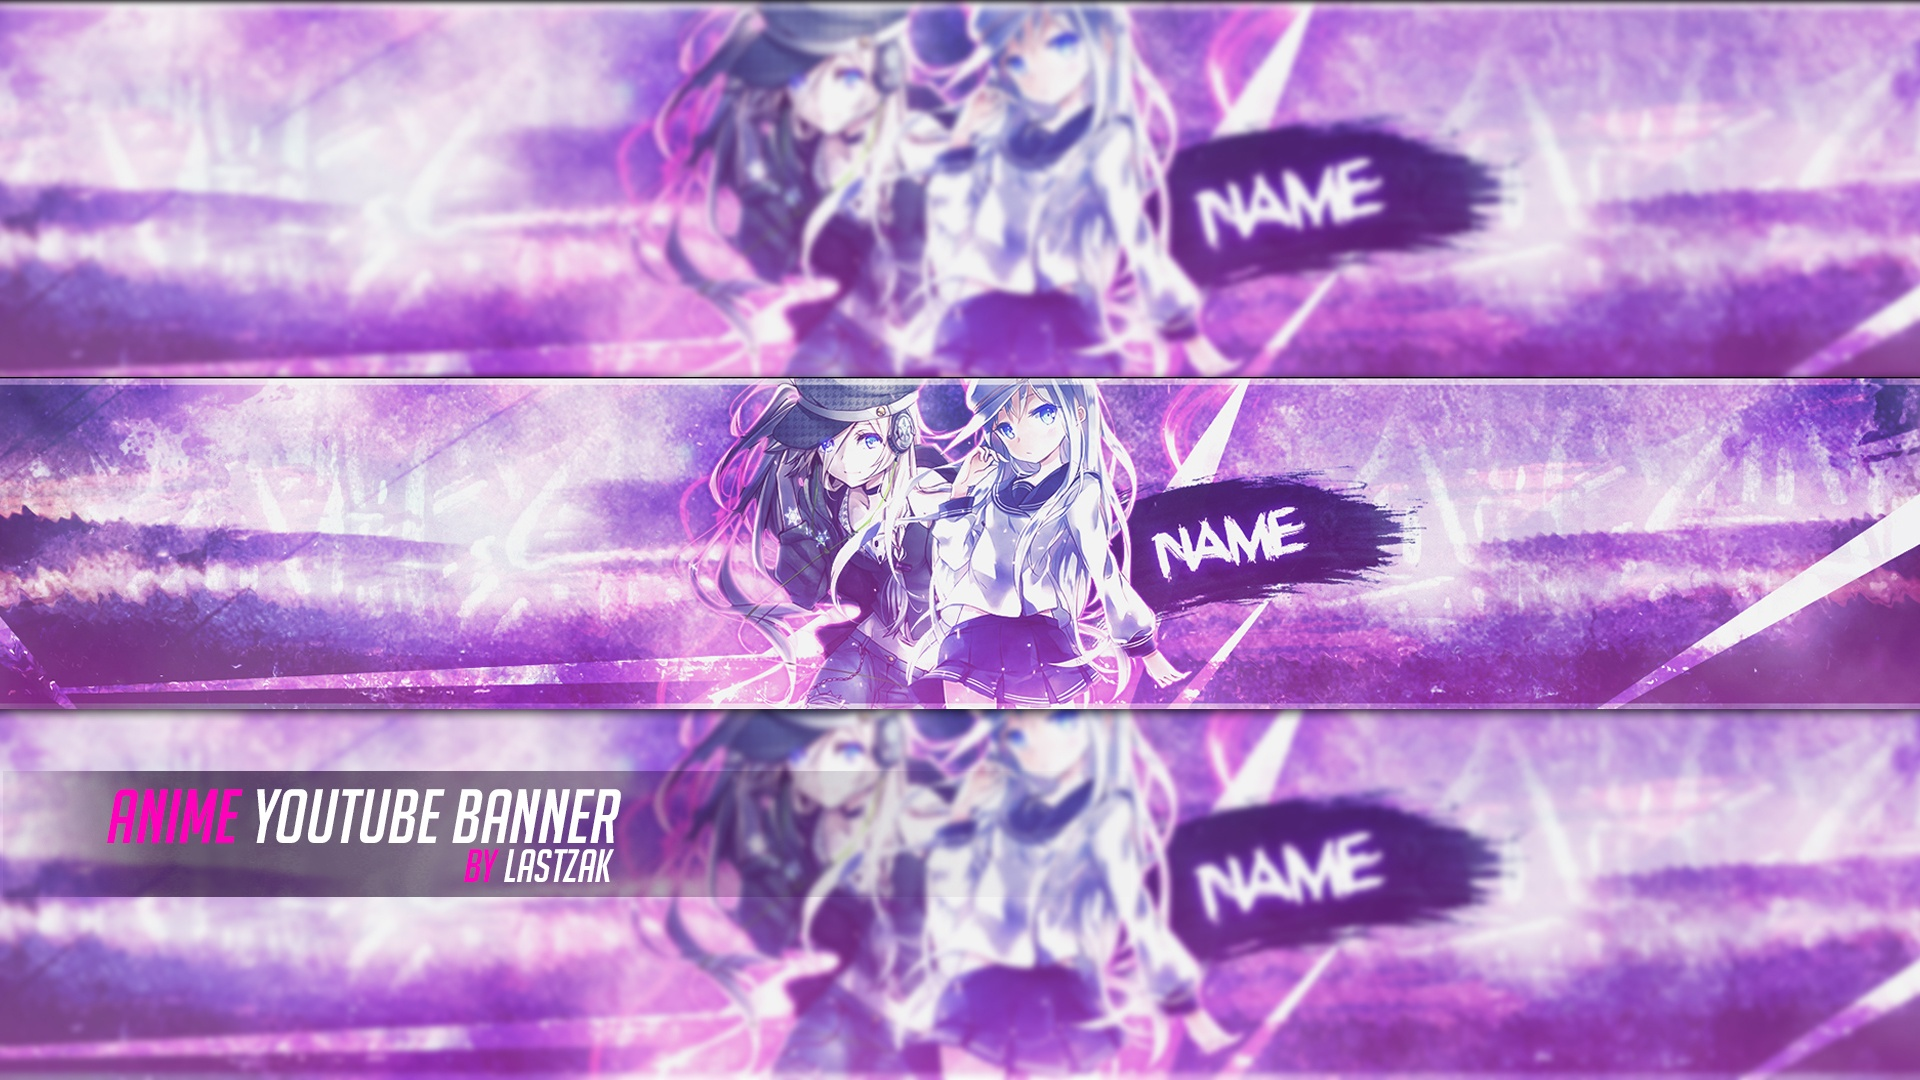 Youtube Banner Design Abstract Pictures Jpg 620x349 Psd